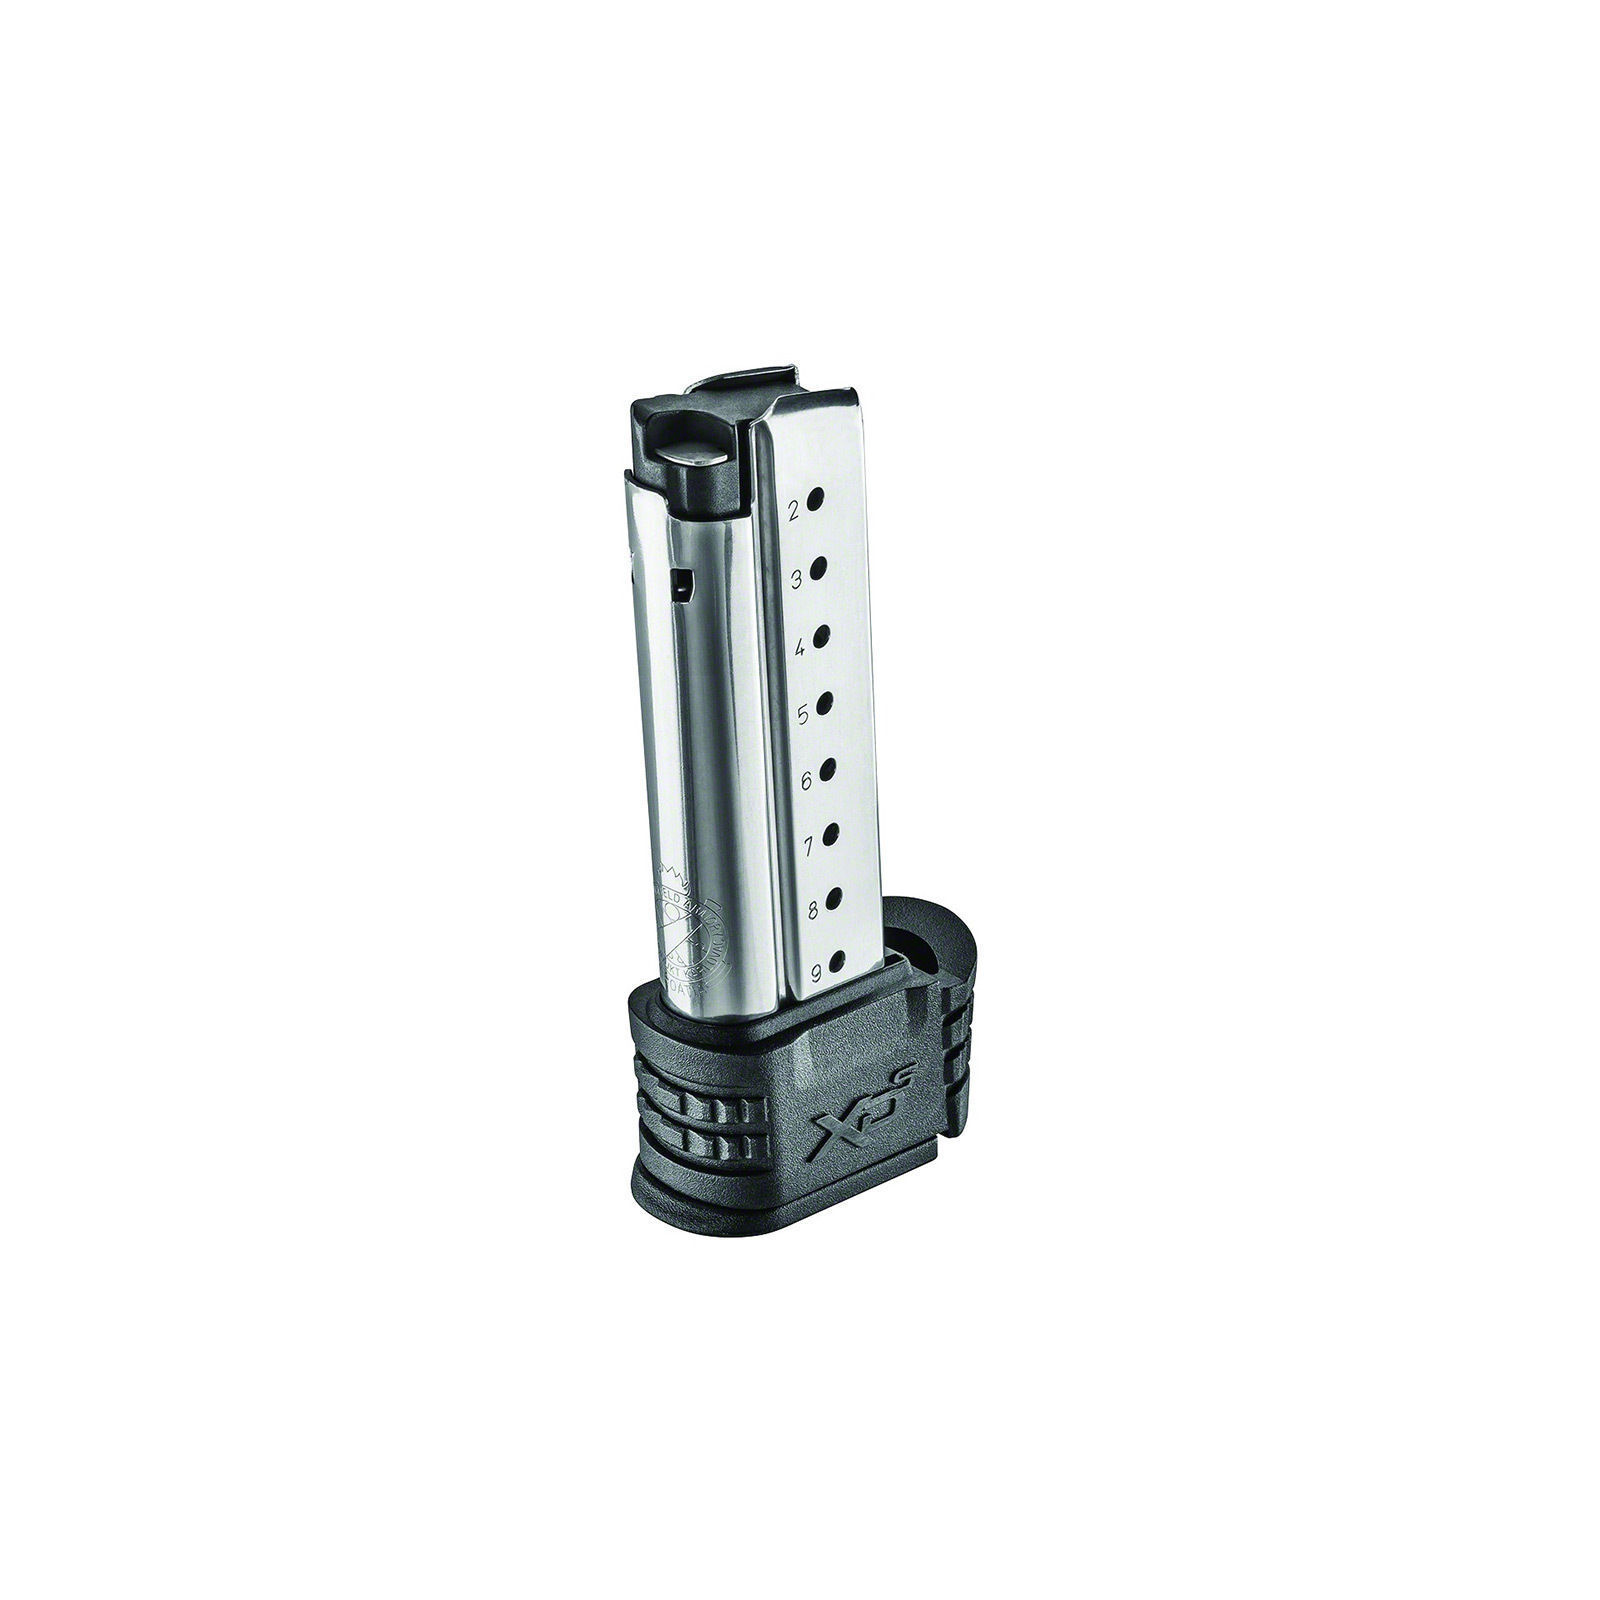 Springfield Armory Gun Parts For Sale Ebay American Standard 6279000 List And Diagram Ereplacementparts Xds 9 Round Magazine Xds09061 9mm Mag Clip X Tension